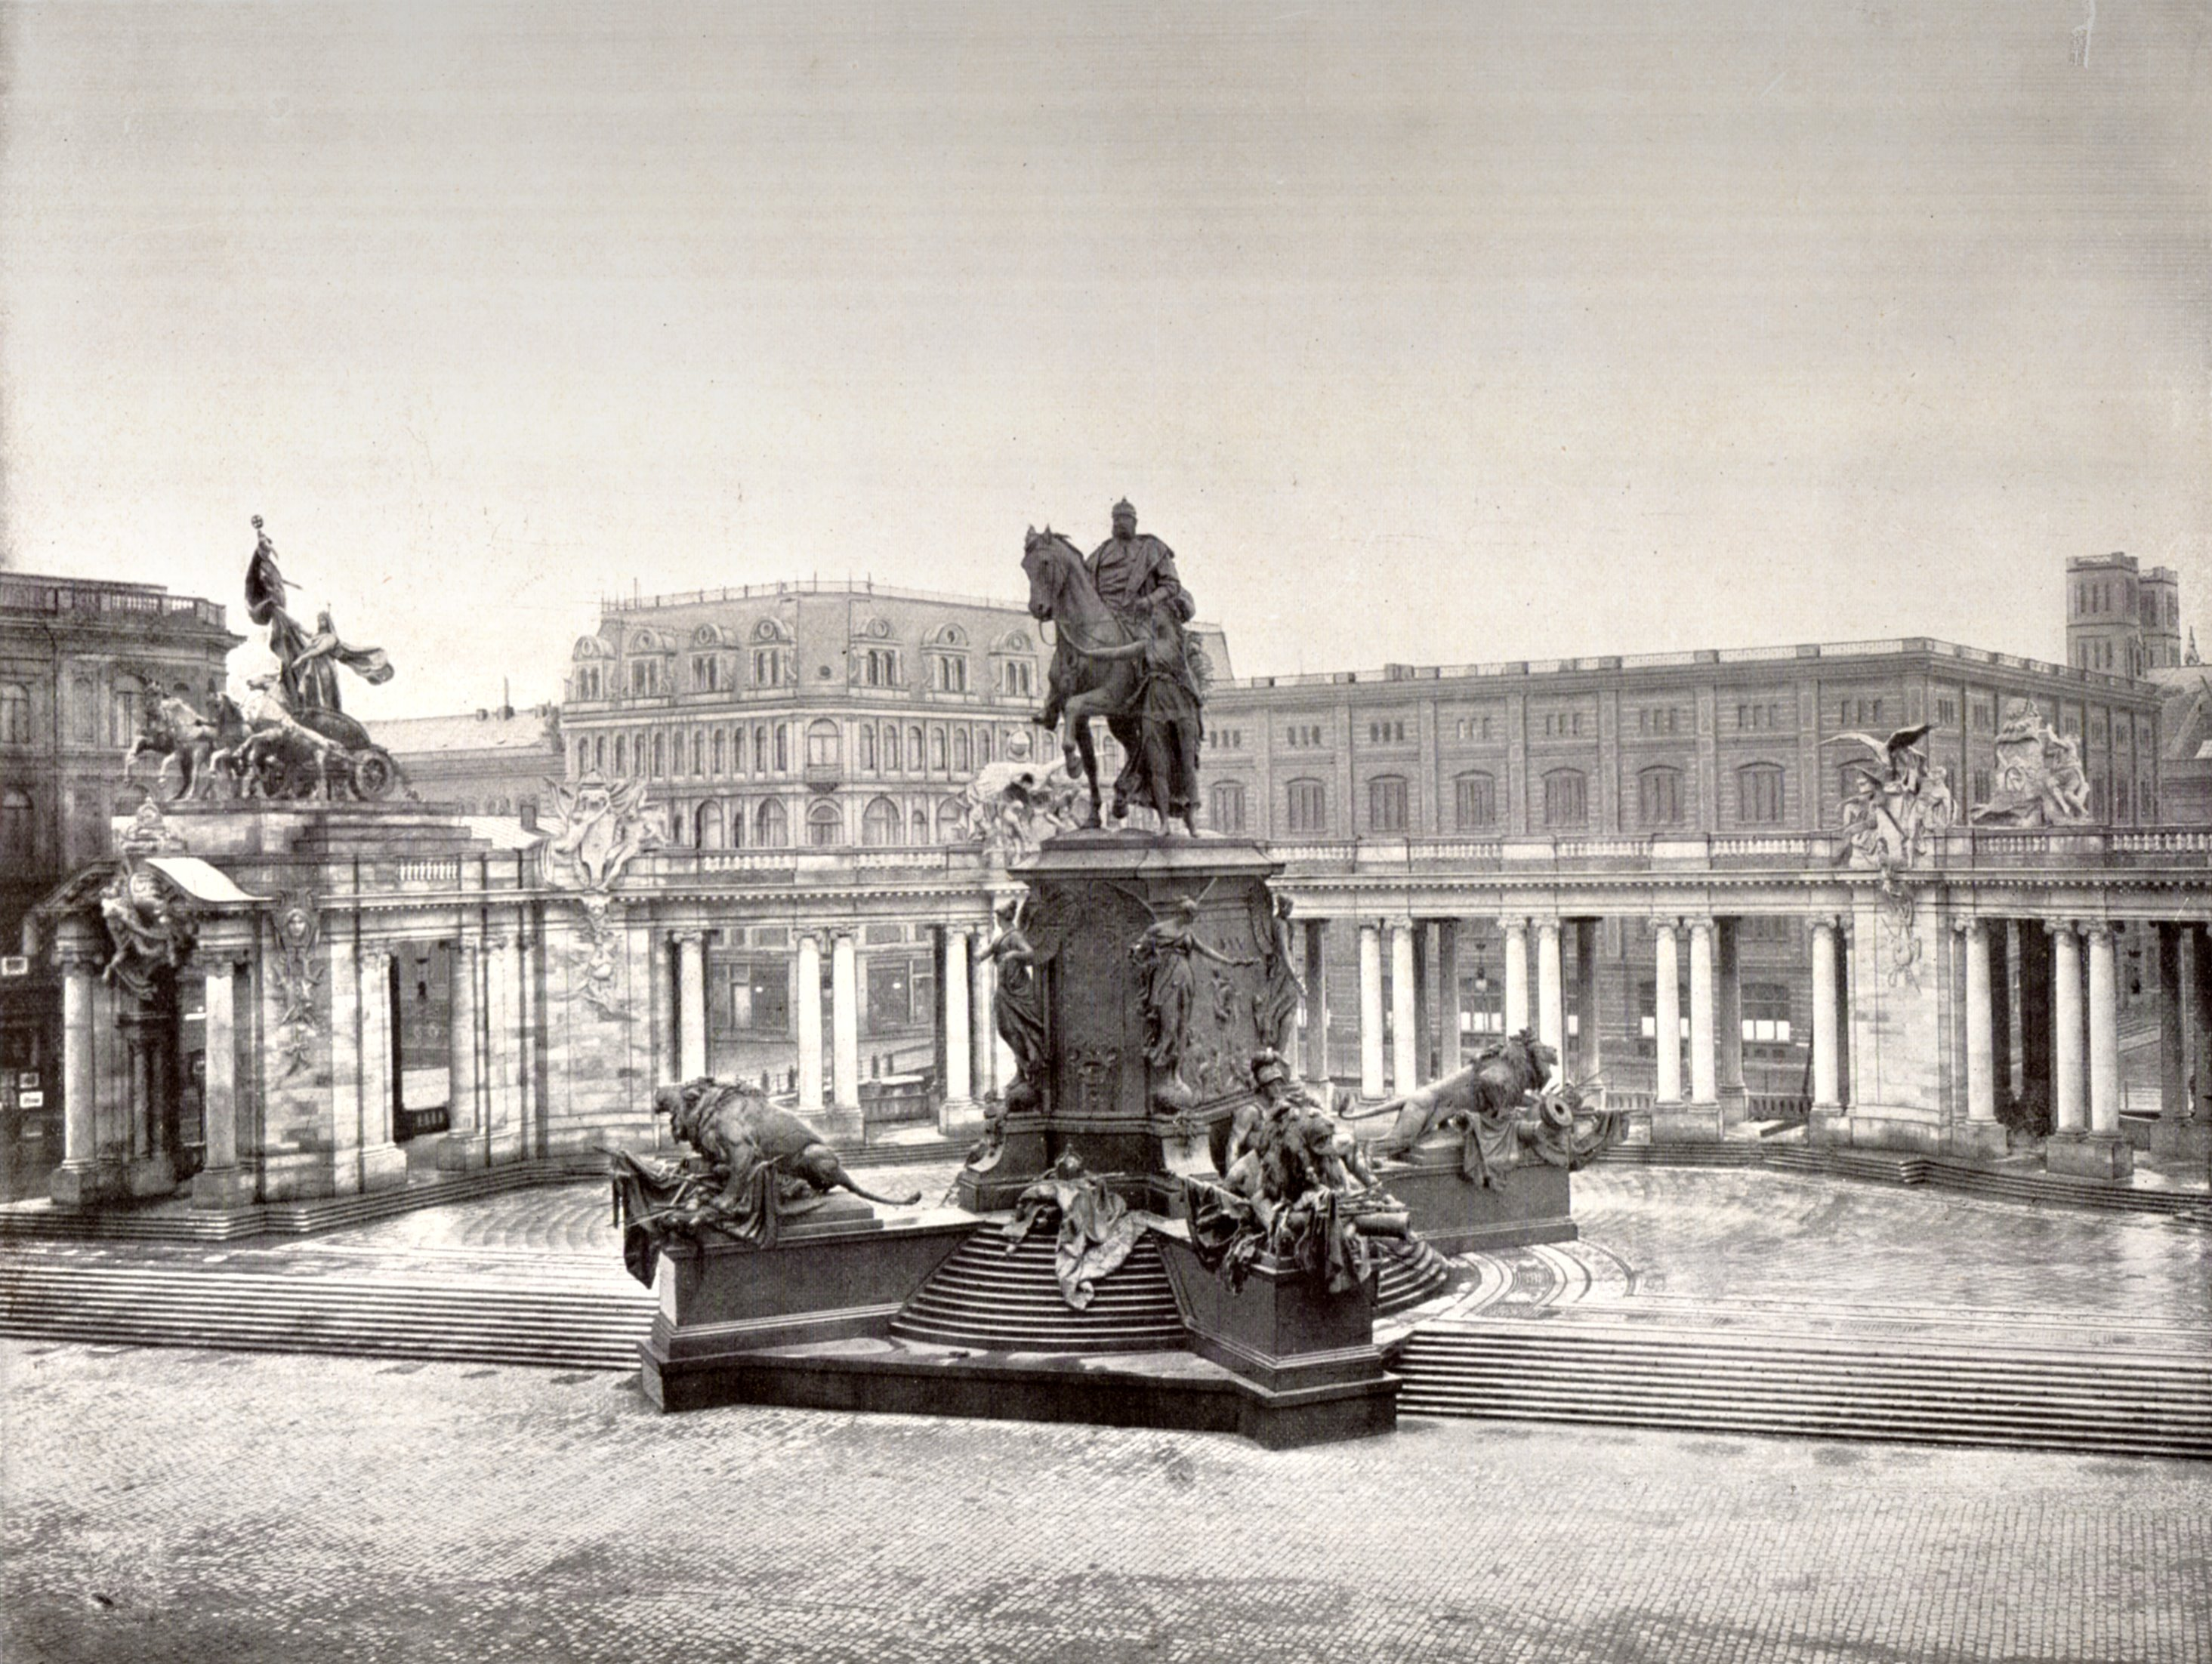 https://upload.wikimedia.org/wikipedia/commons/1/14/Berlin_Nationaldenkmal_Kaiser_Wilhelm_1900.jpg